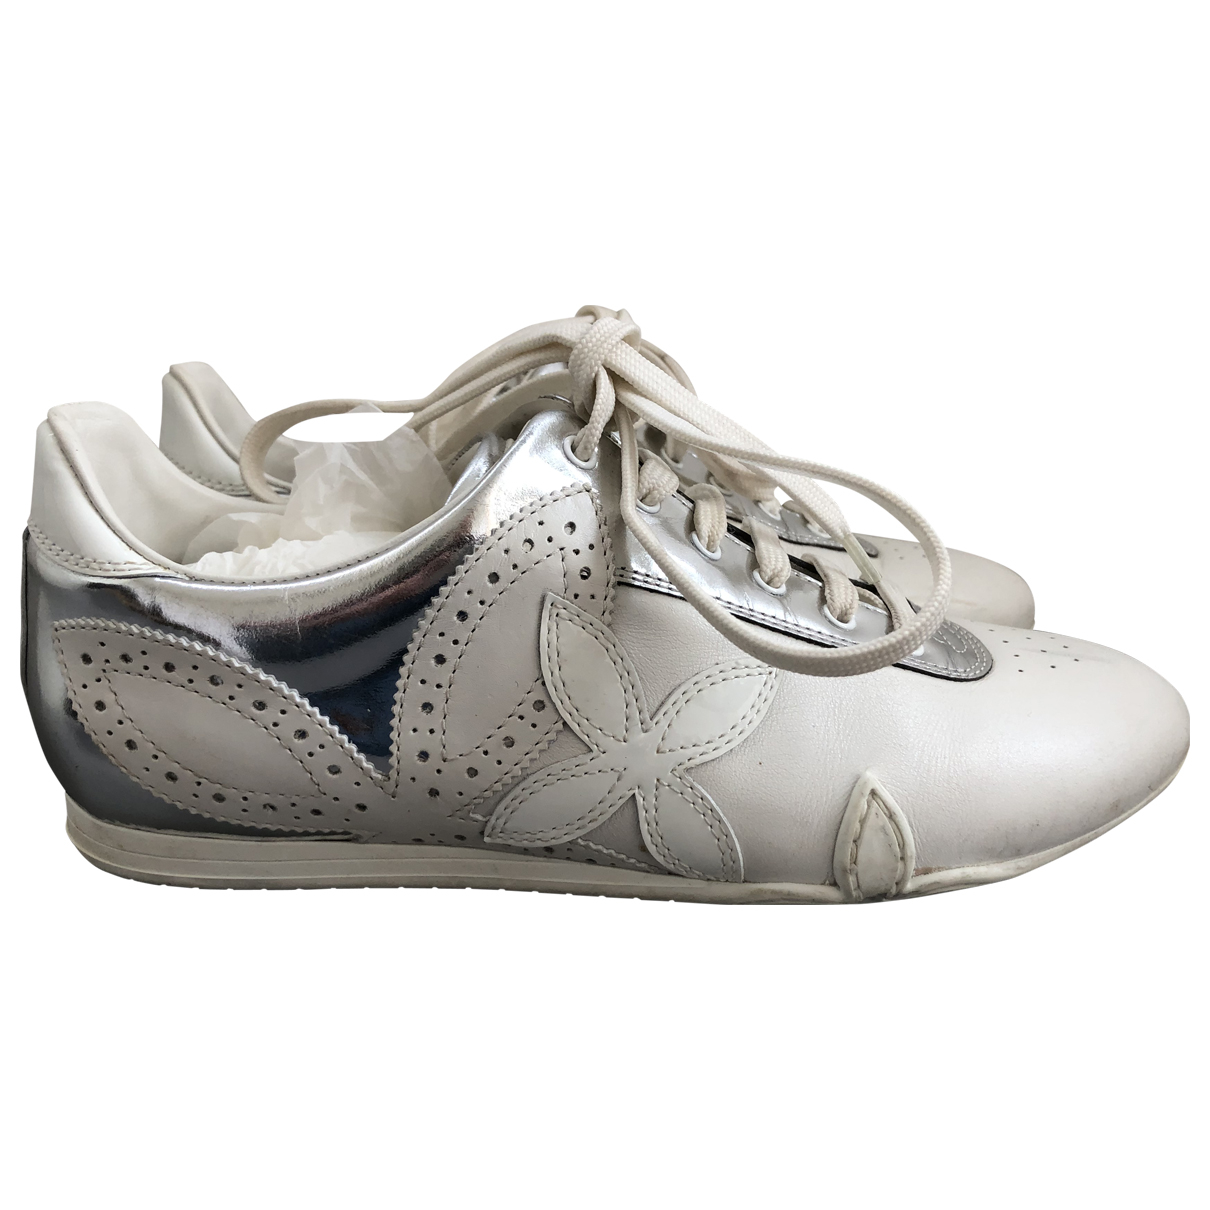 Louis Vuitton \N Sneakers in  Weiss Leder